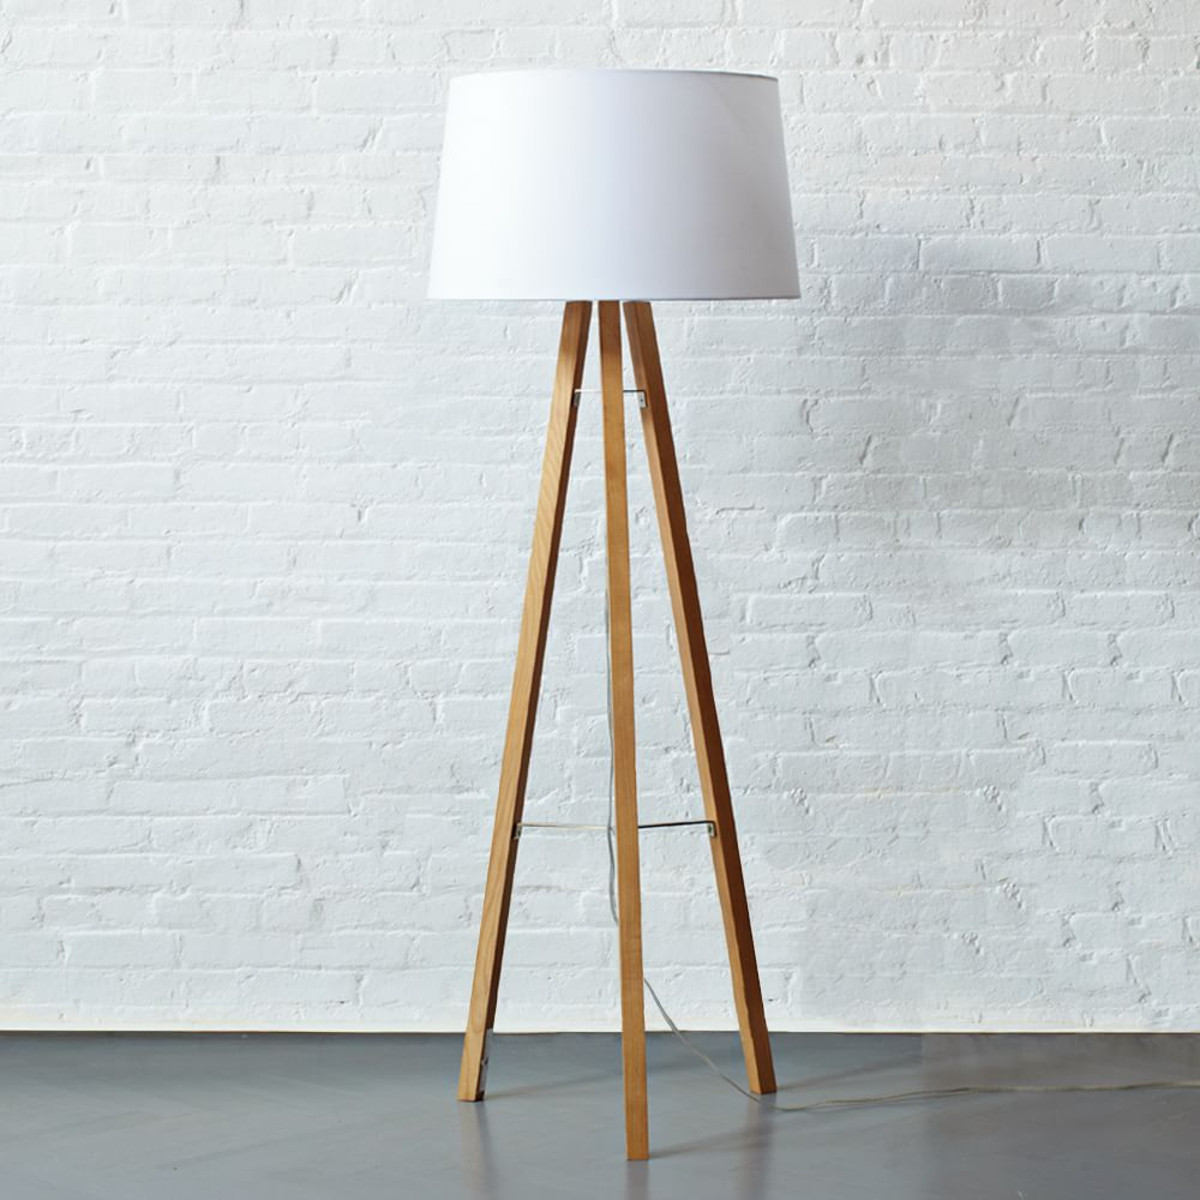 Awesome Tripod Lamp for Interior Lighting Ideas: Tripod Lamp | Studio Tripod Lamp | Wood Tripod Lamp